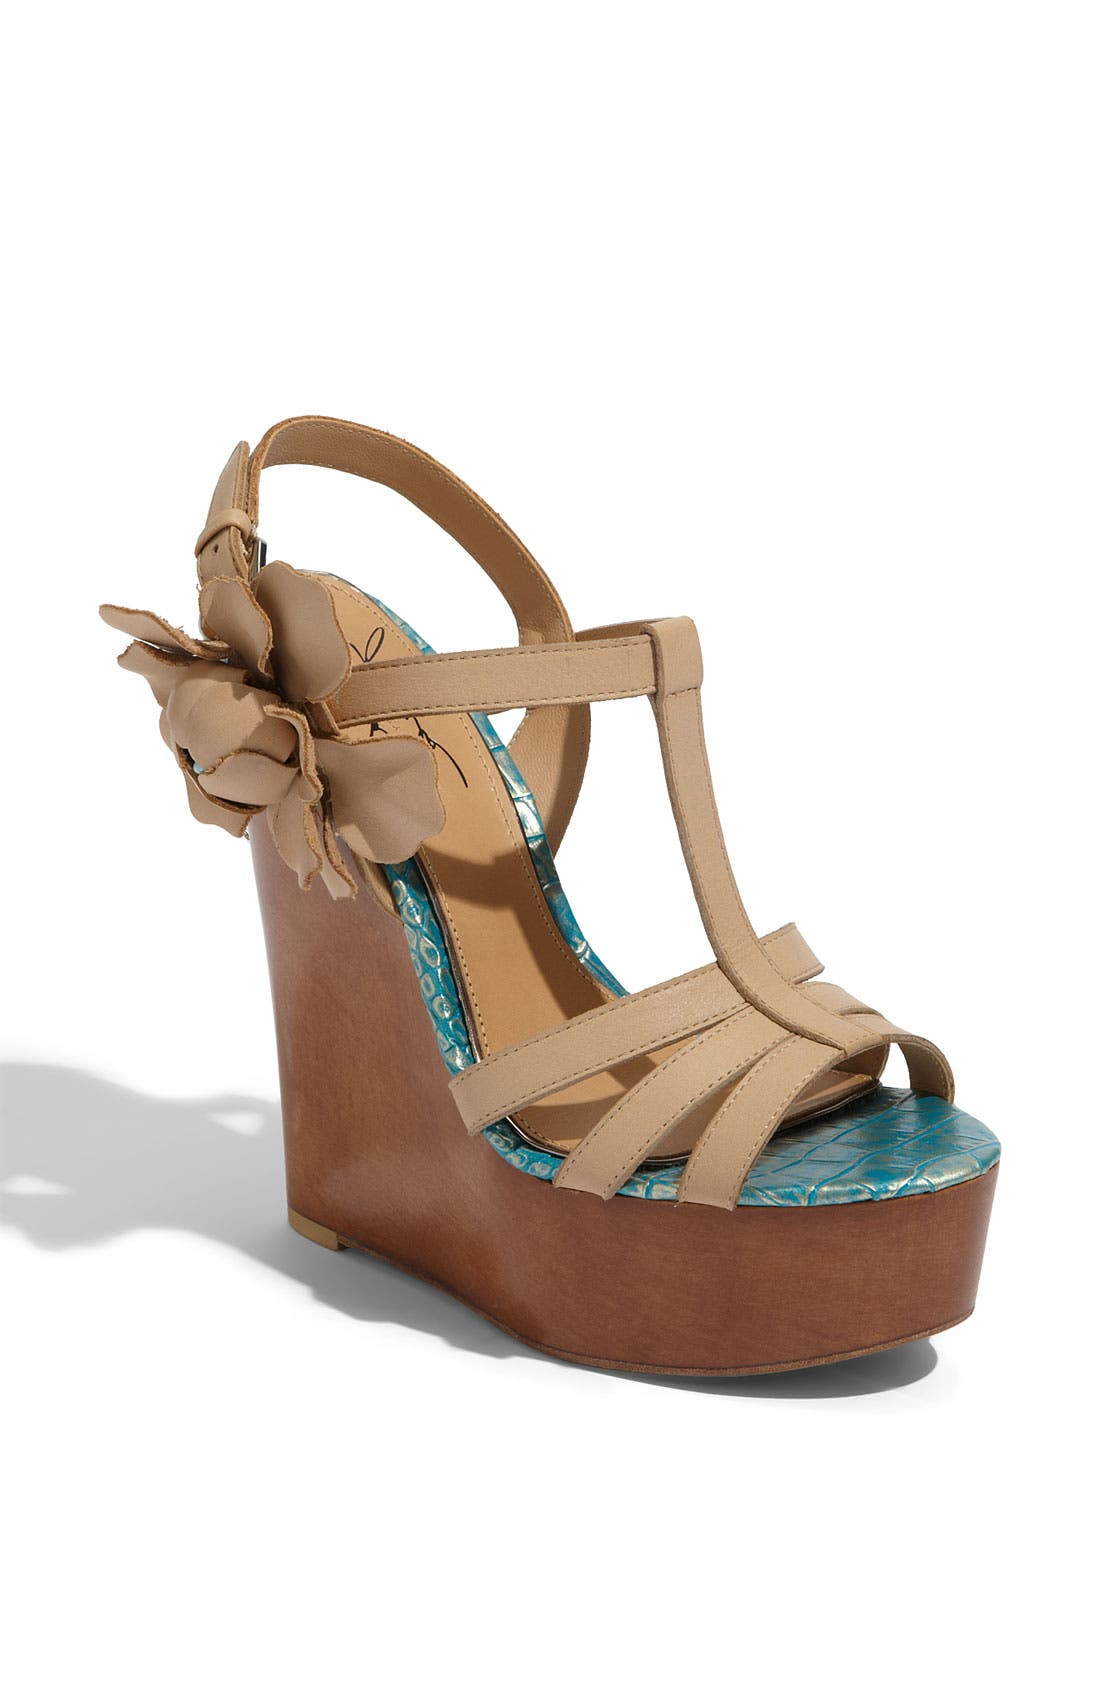 Alternate Image 1 Selected - Mark & James by Badgley Mischka 'Maiko' T-Strap Sandal